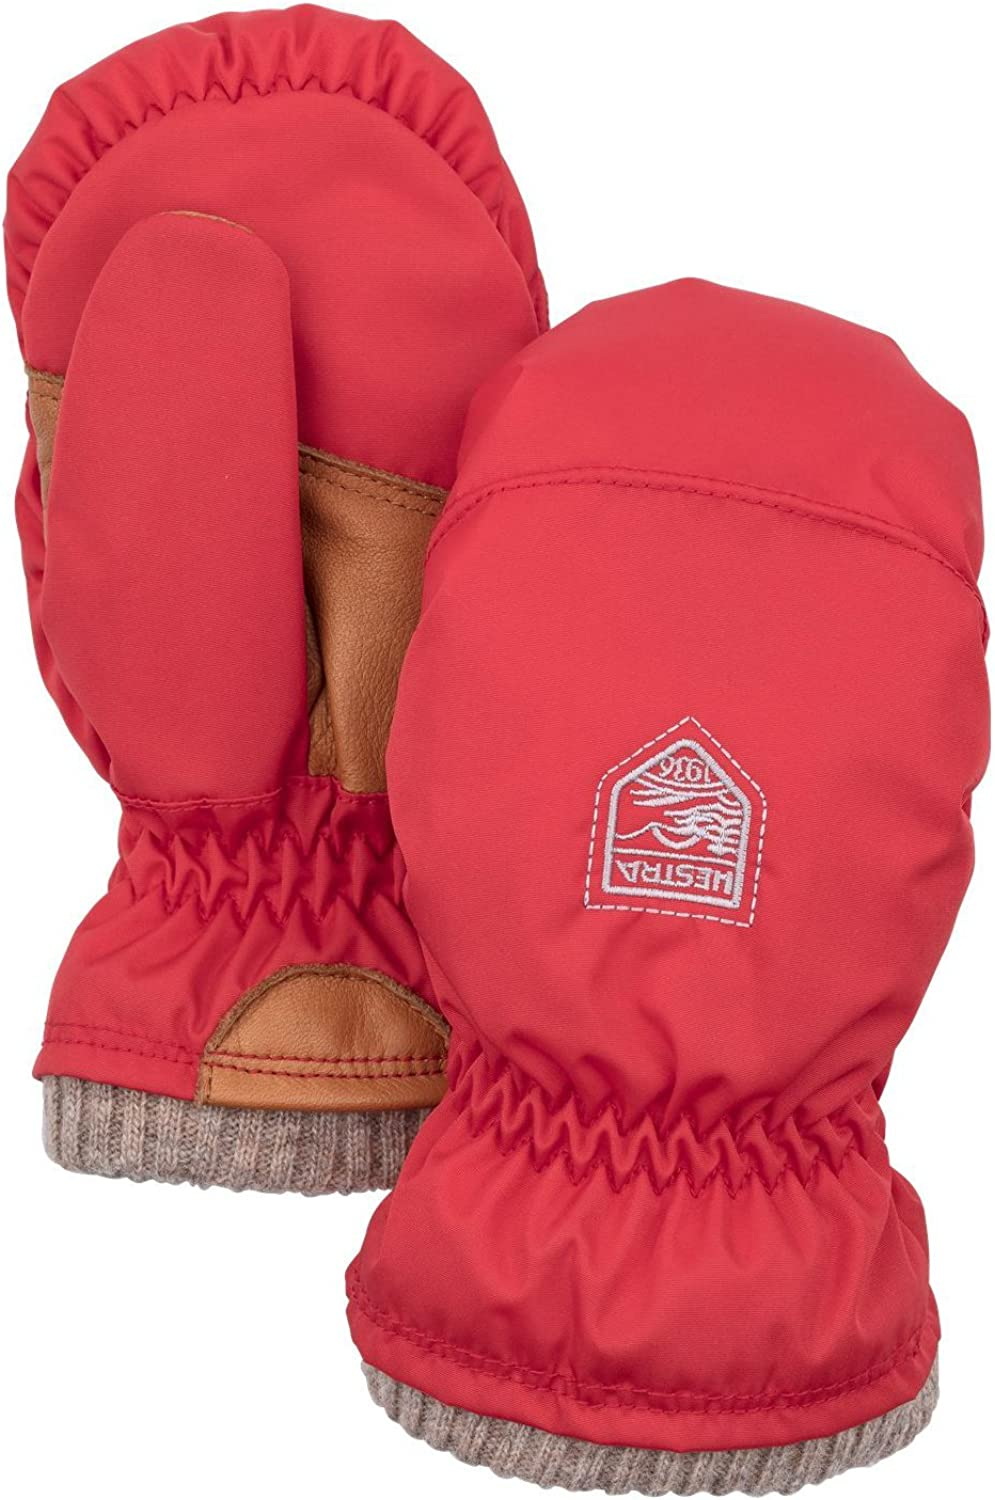 Hestra Gloves 36921 My First Basic Mitt 3 Light Red